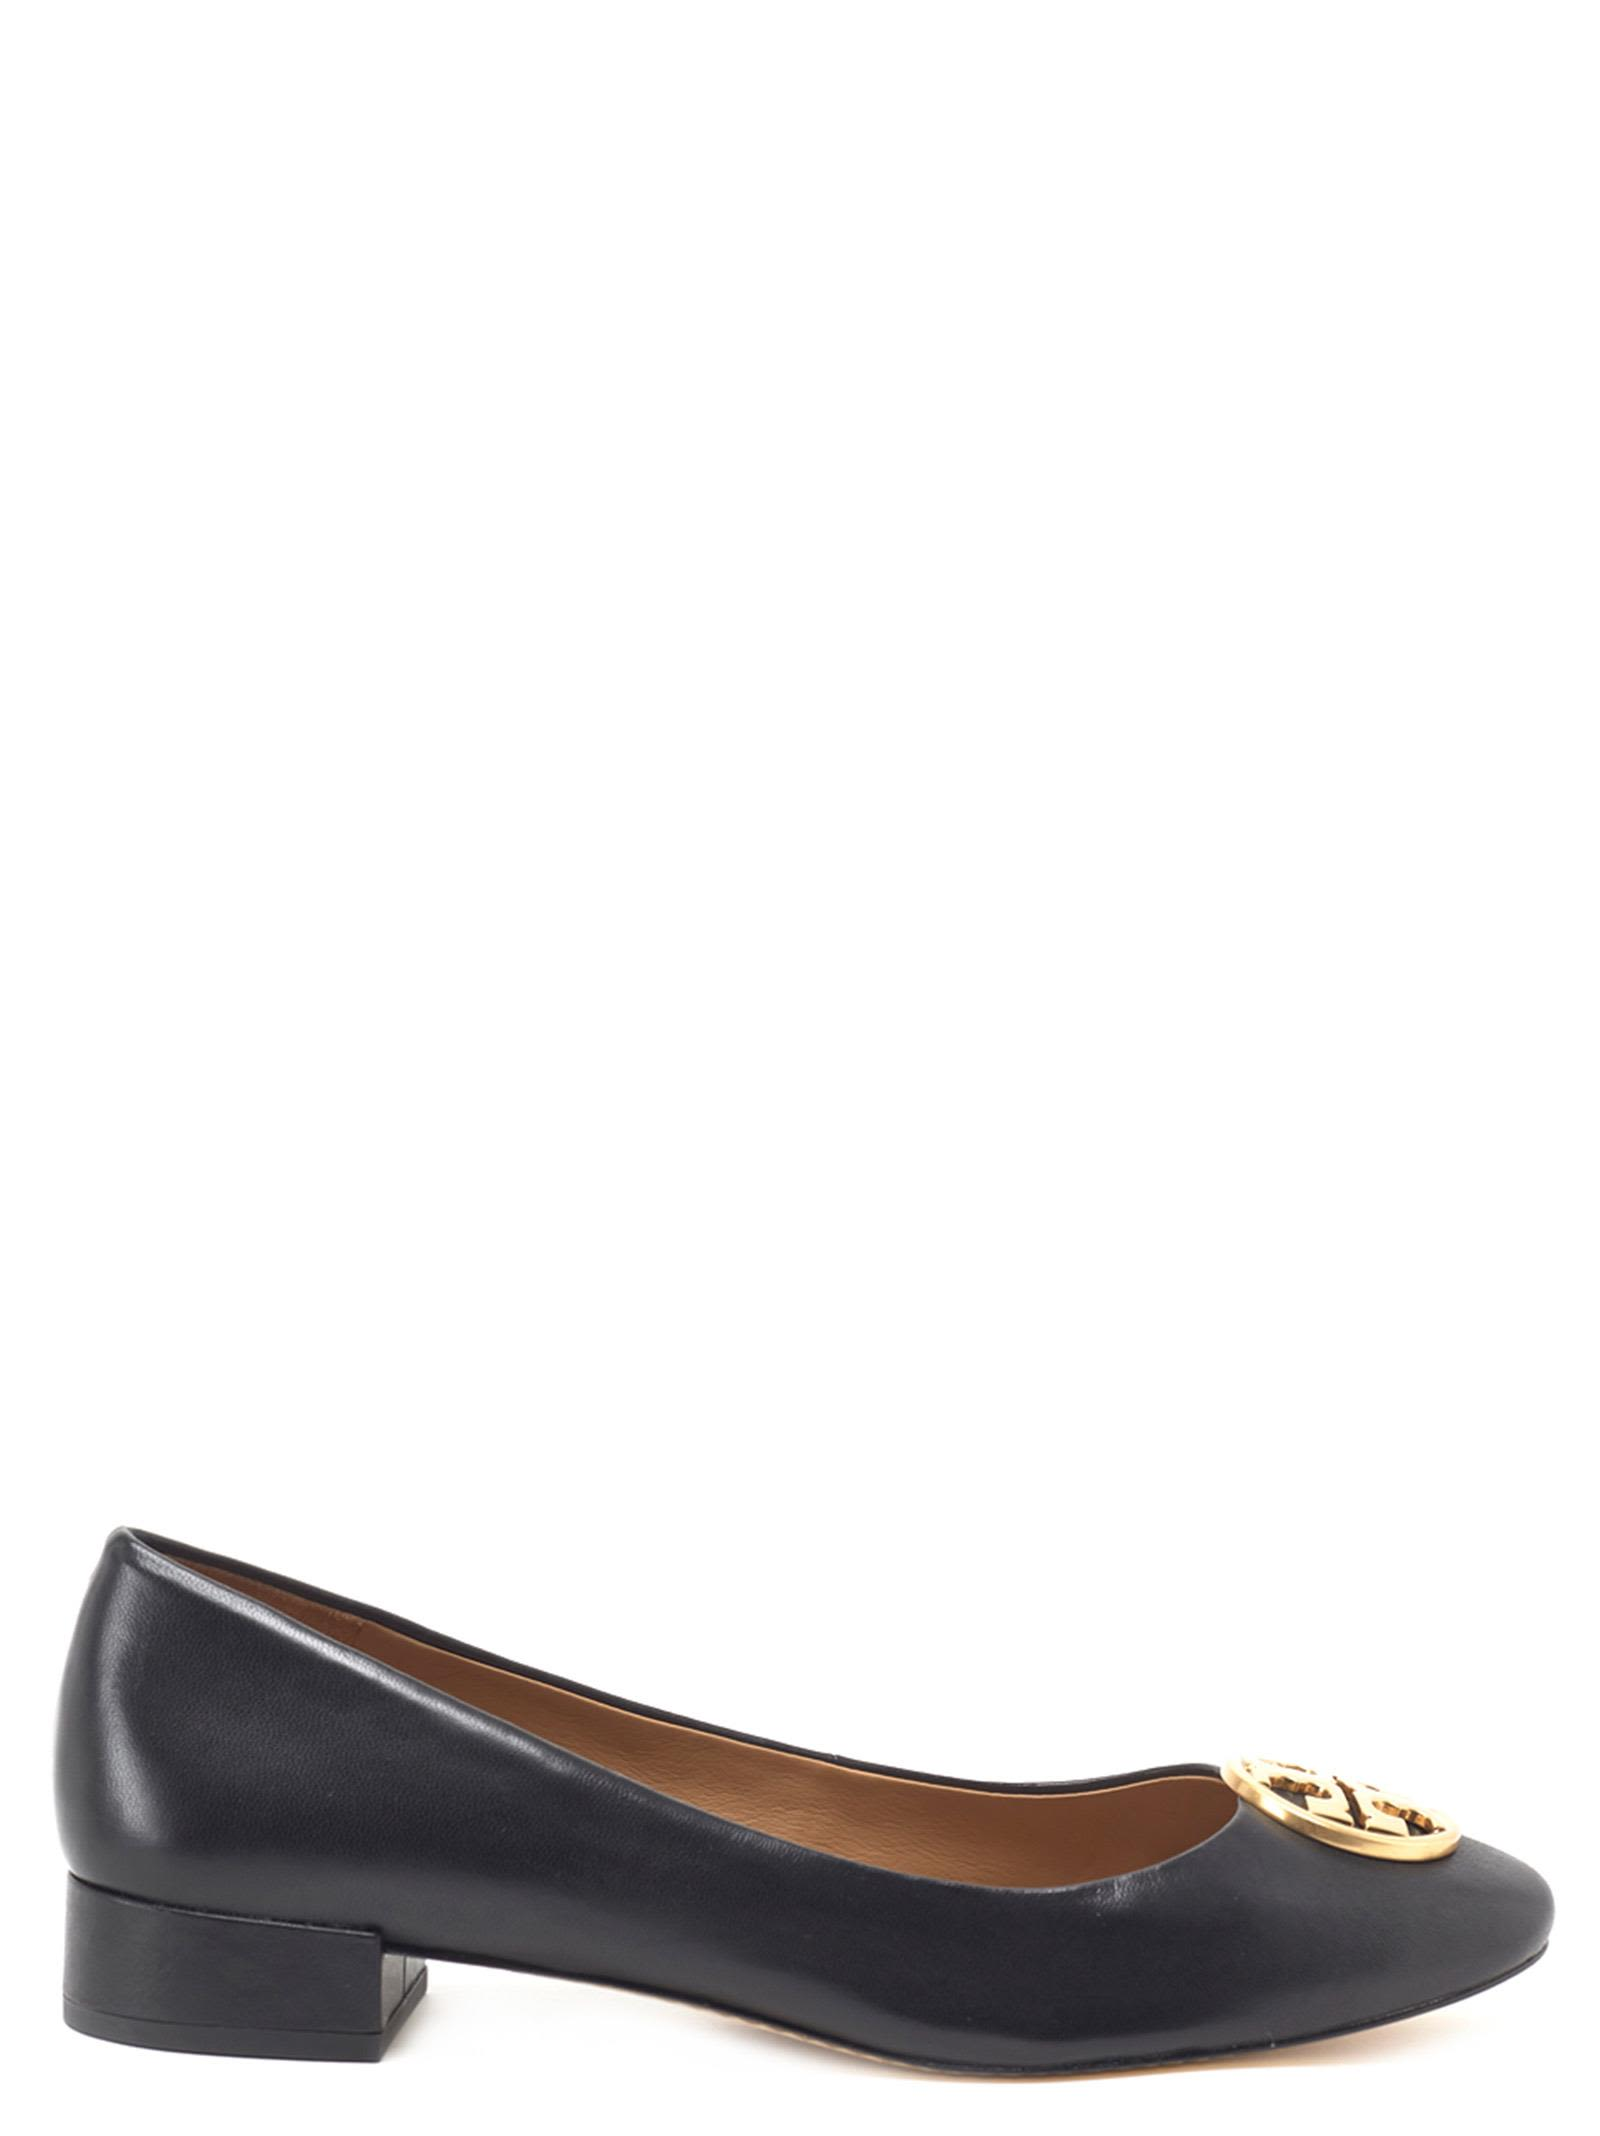 Tory Burch 'chelsea' Shoes